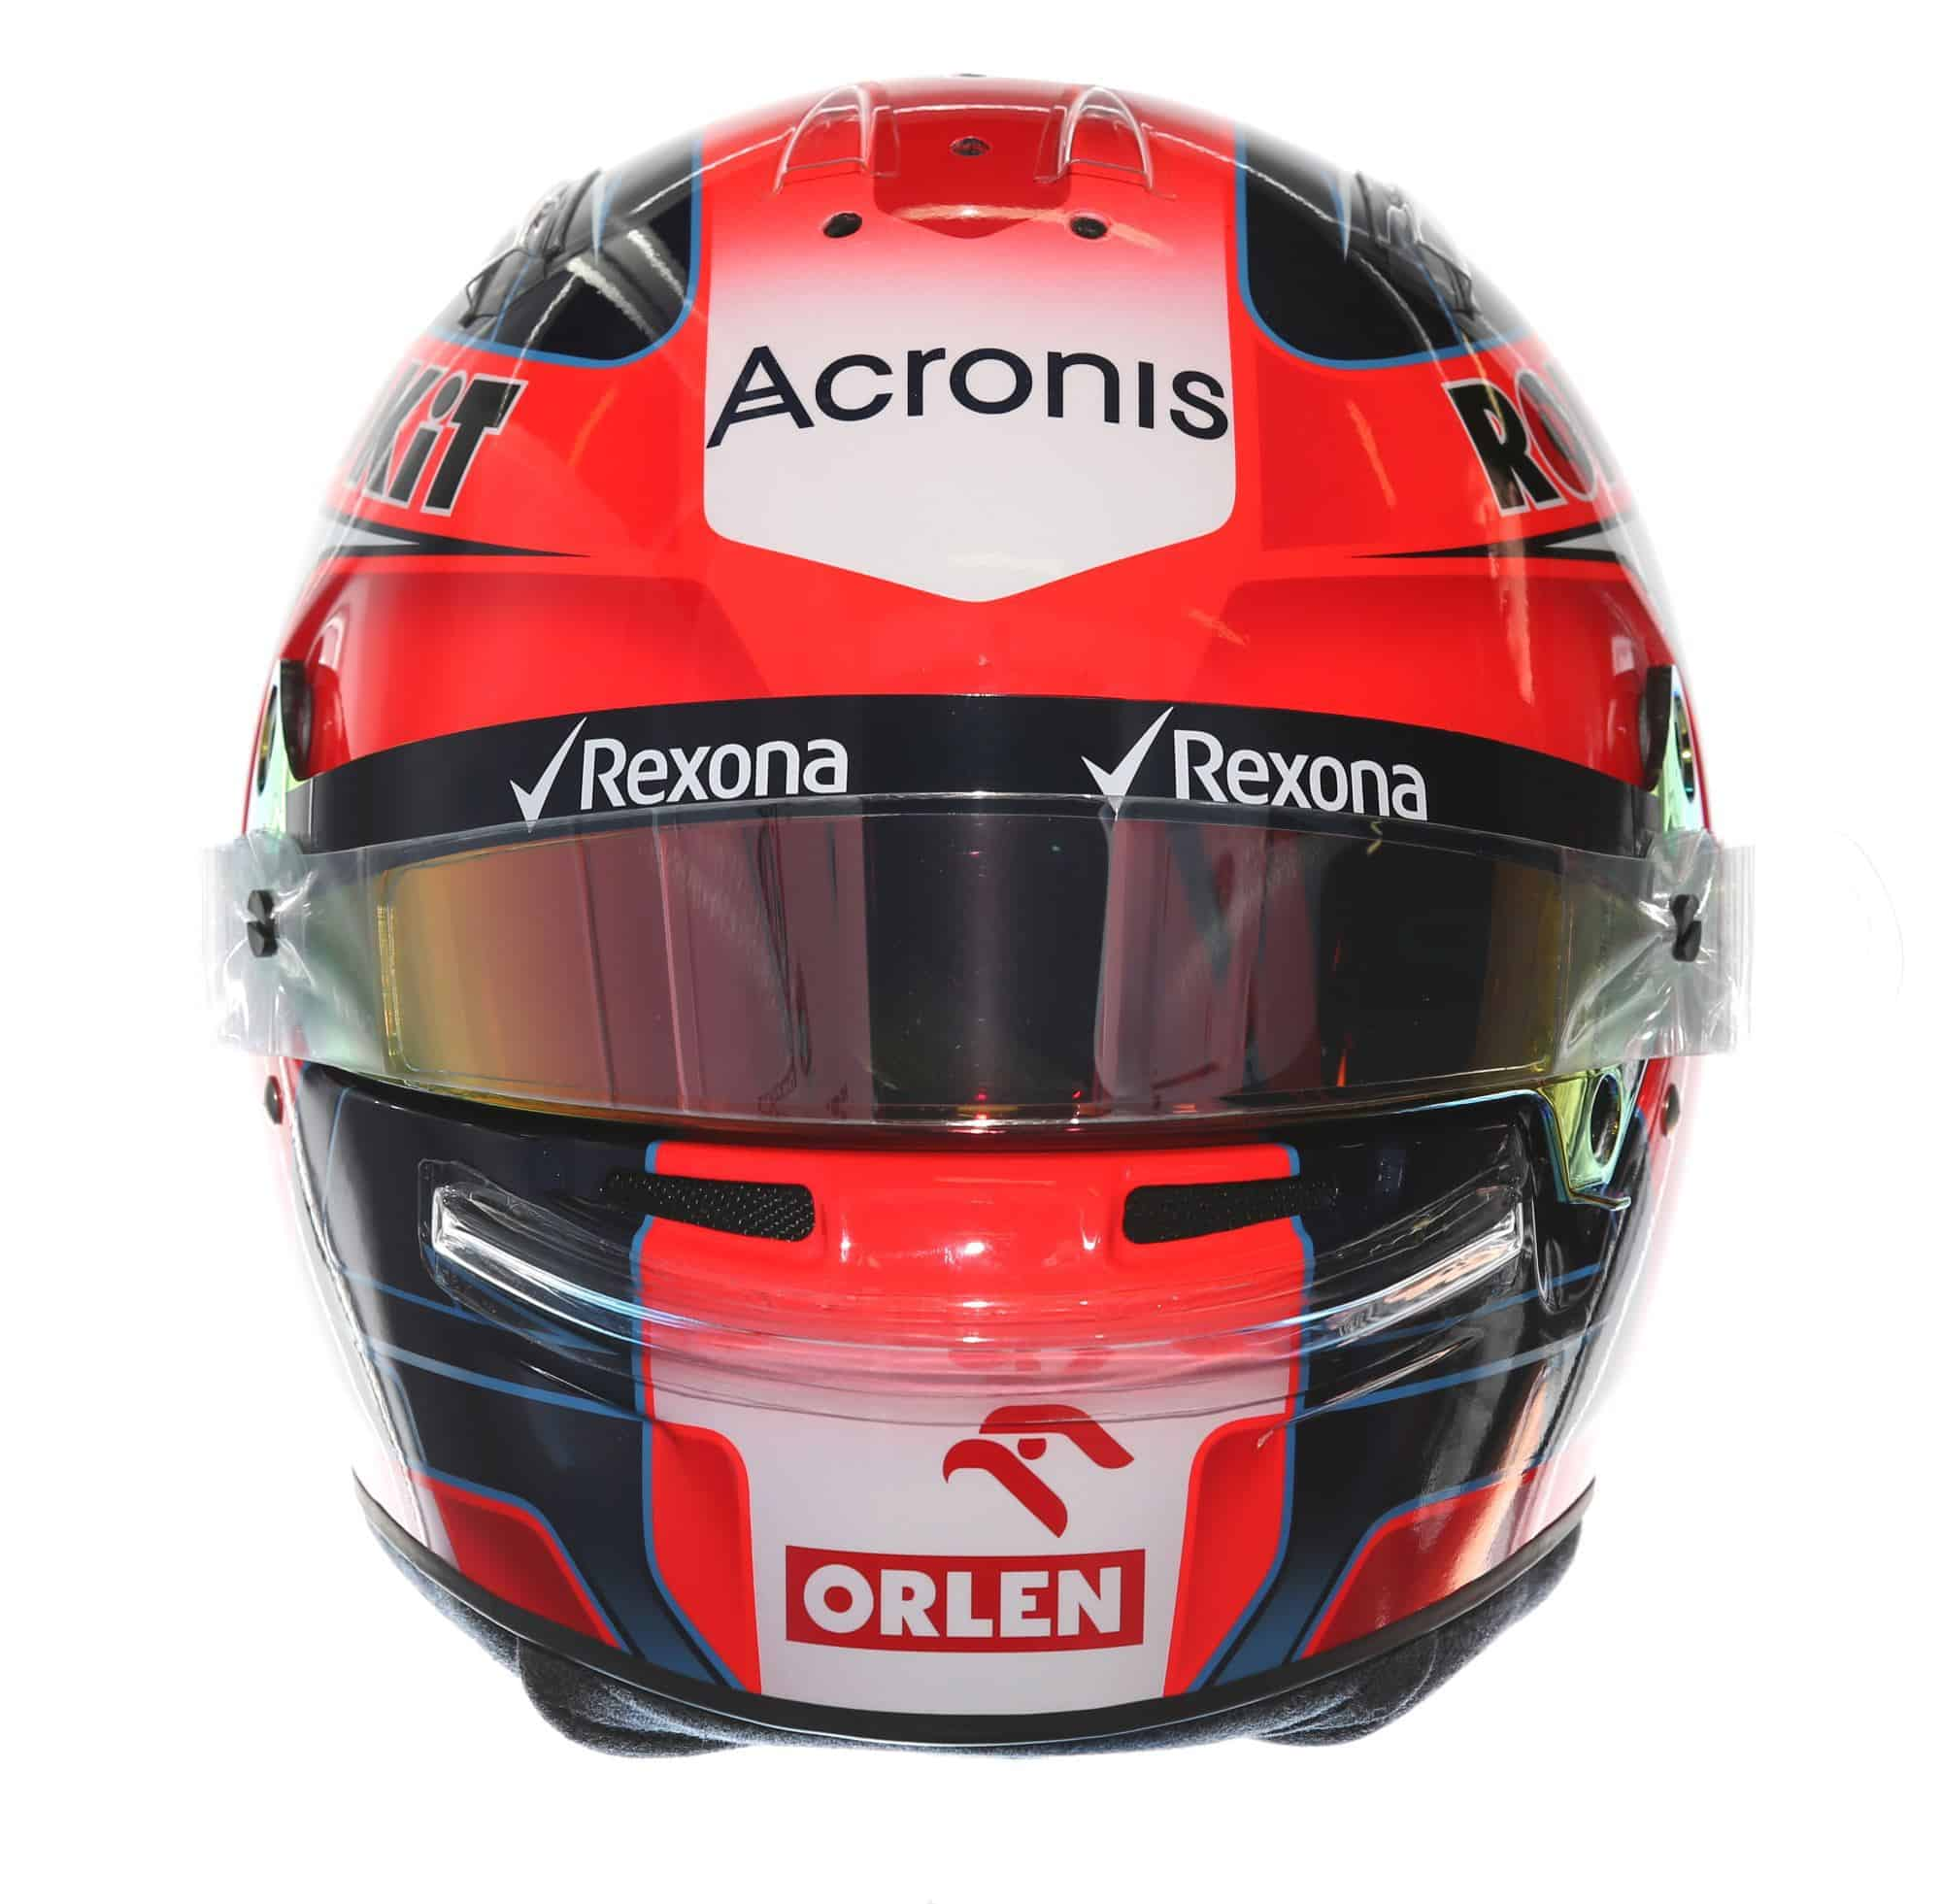 2019 Rokit Williams Racing Robert Kubica helmet front Photo Williams Edited by MAXF1net